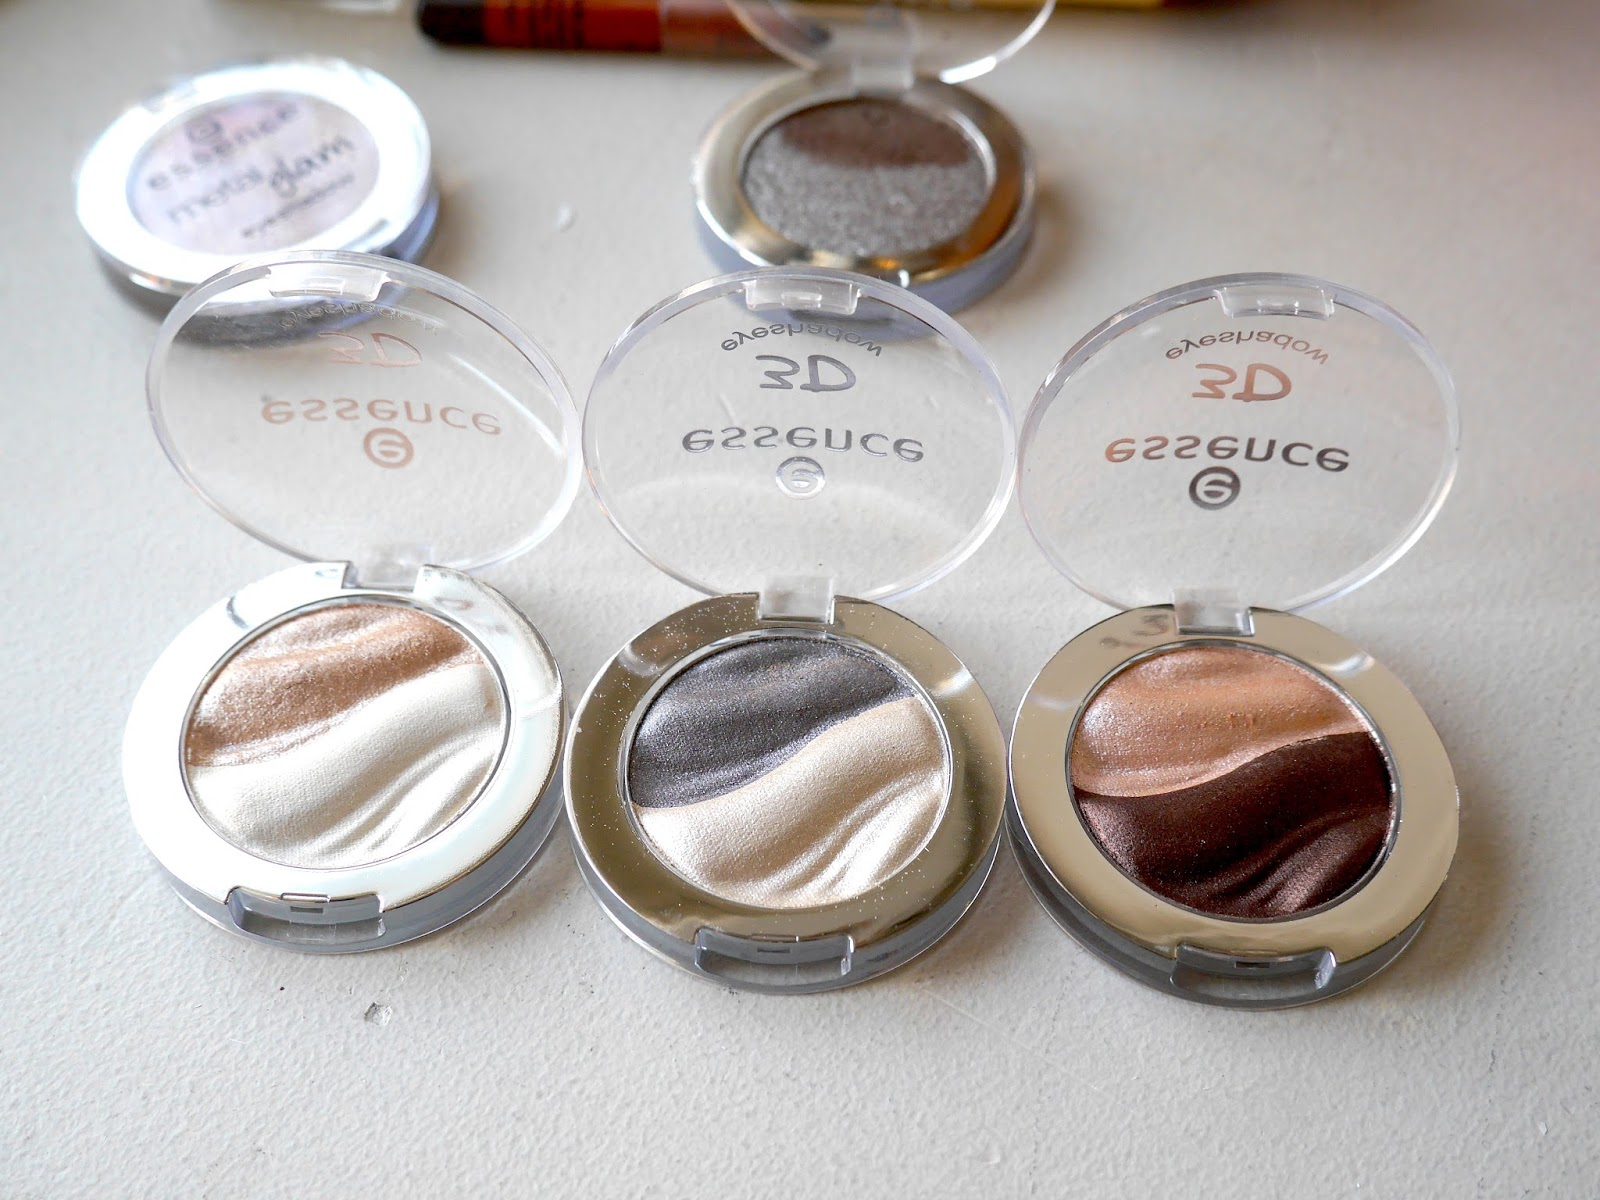 Essence 3D Shadows Irresistible Vanilla Latte, Fullmoon Flash, Choco Cupcake swatch review